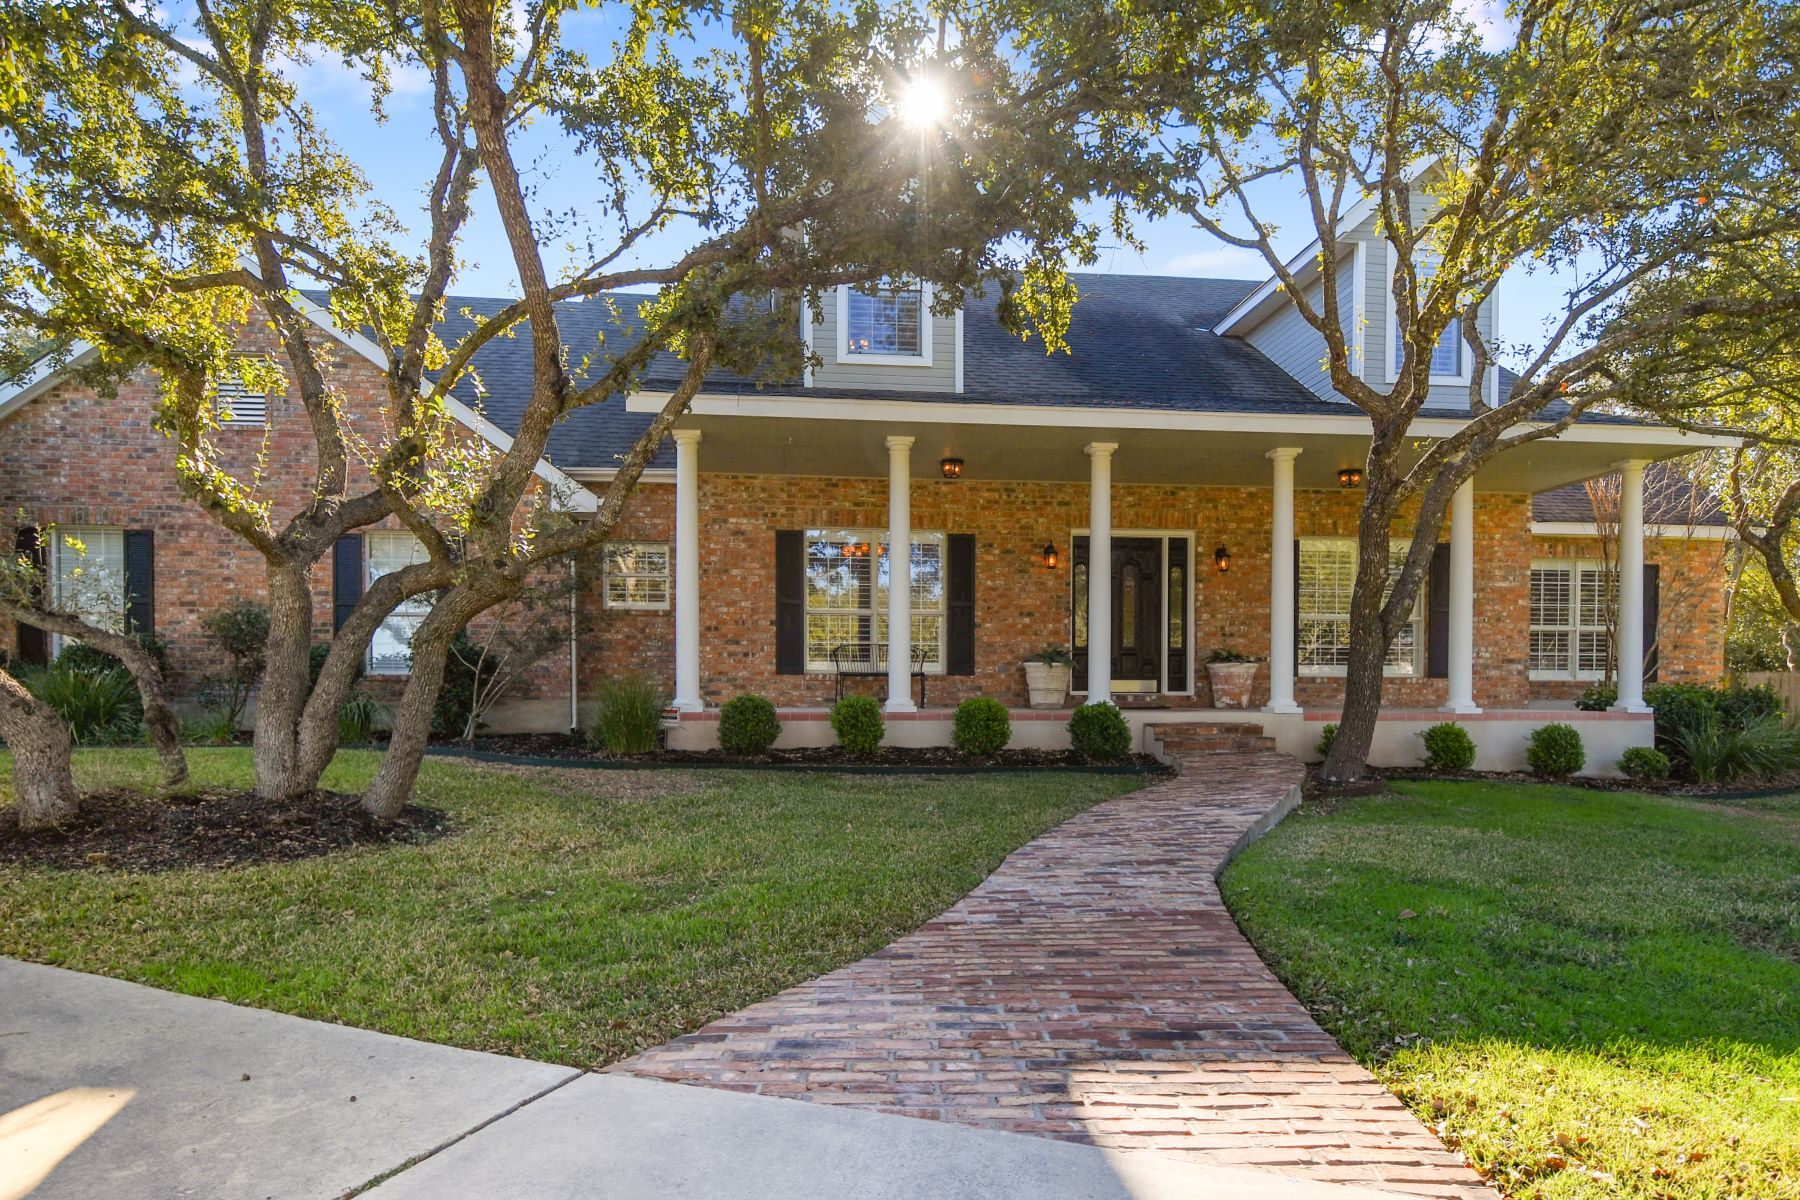 Single Family Homes for Active at Stunning Property in Desired Hunters Creek 515 Hunters Trophy New Braunfels, Texas 78132 United States